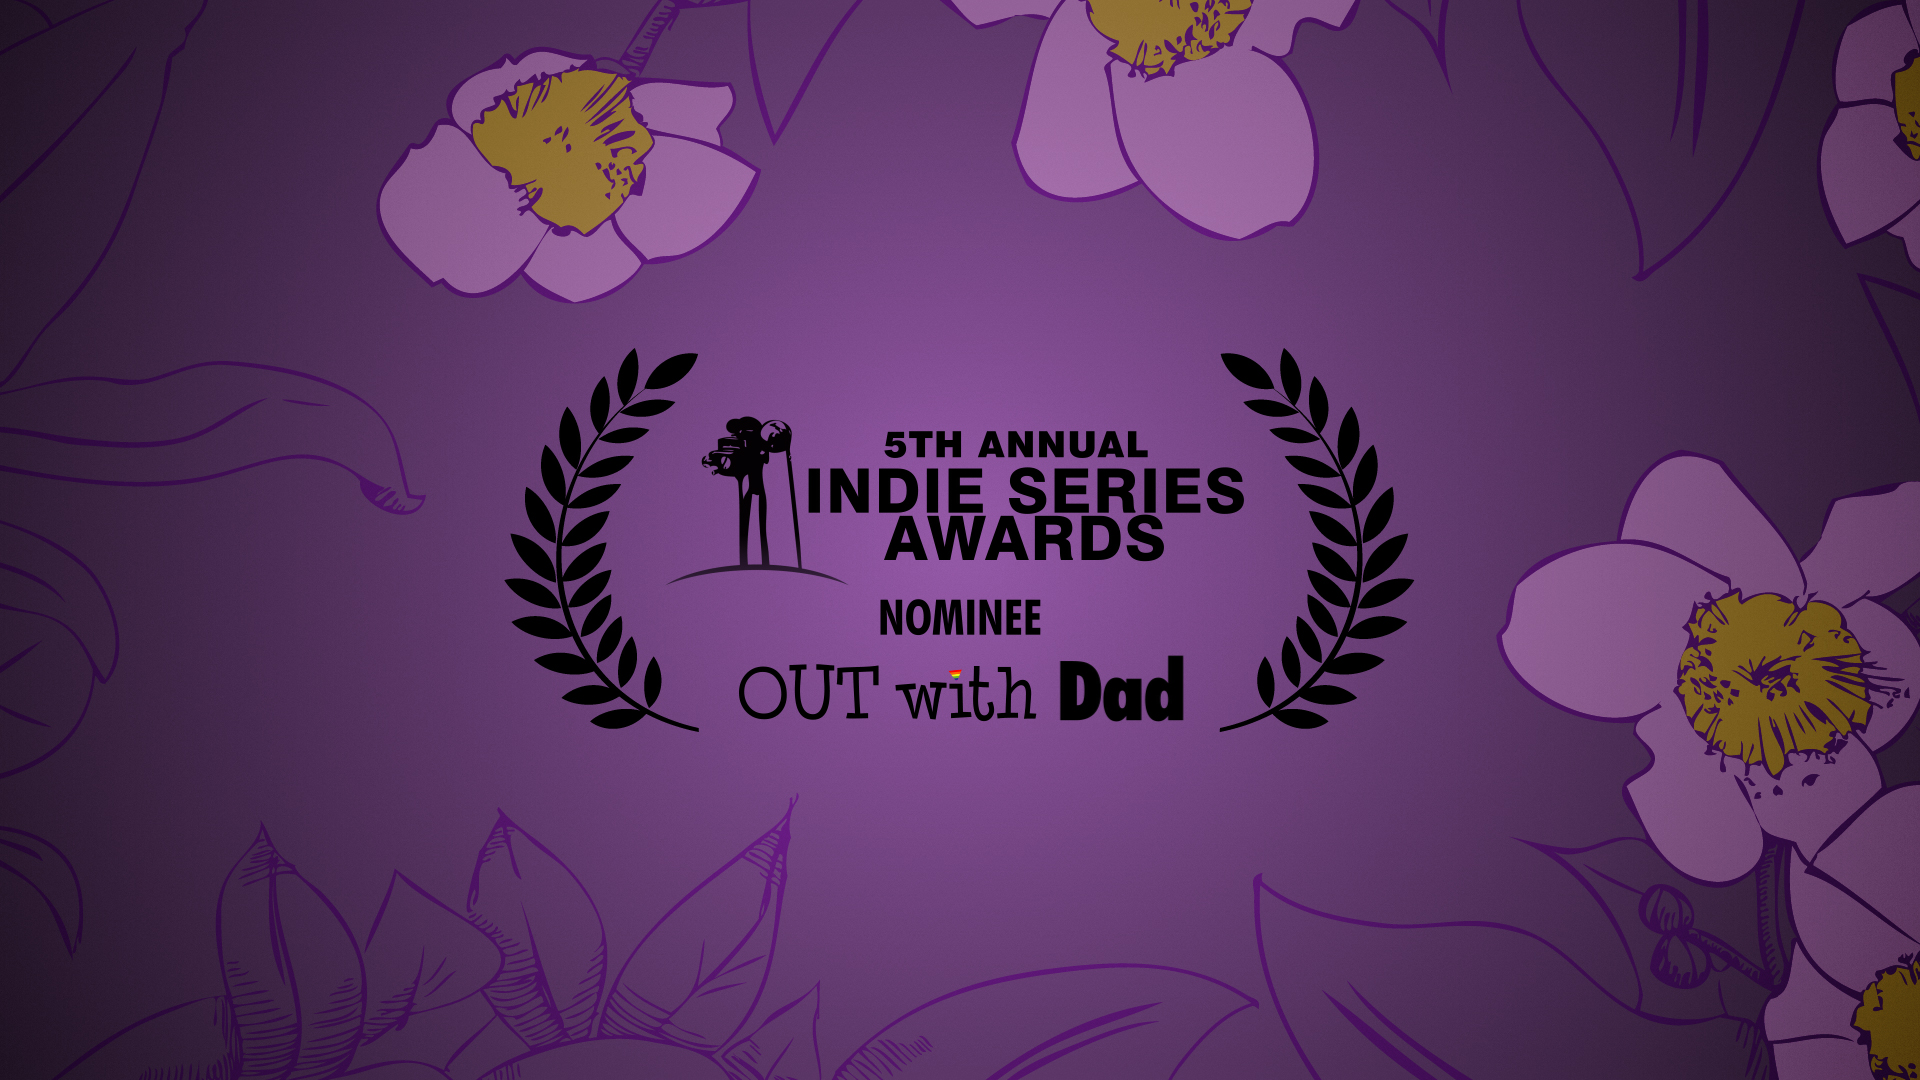 Nominated in the 5th Annual Indie Series Awards